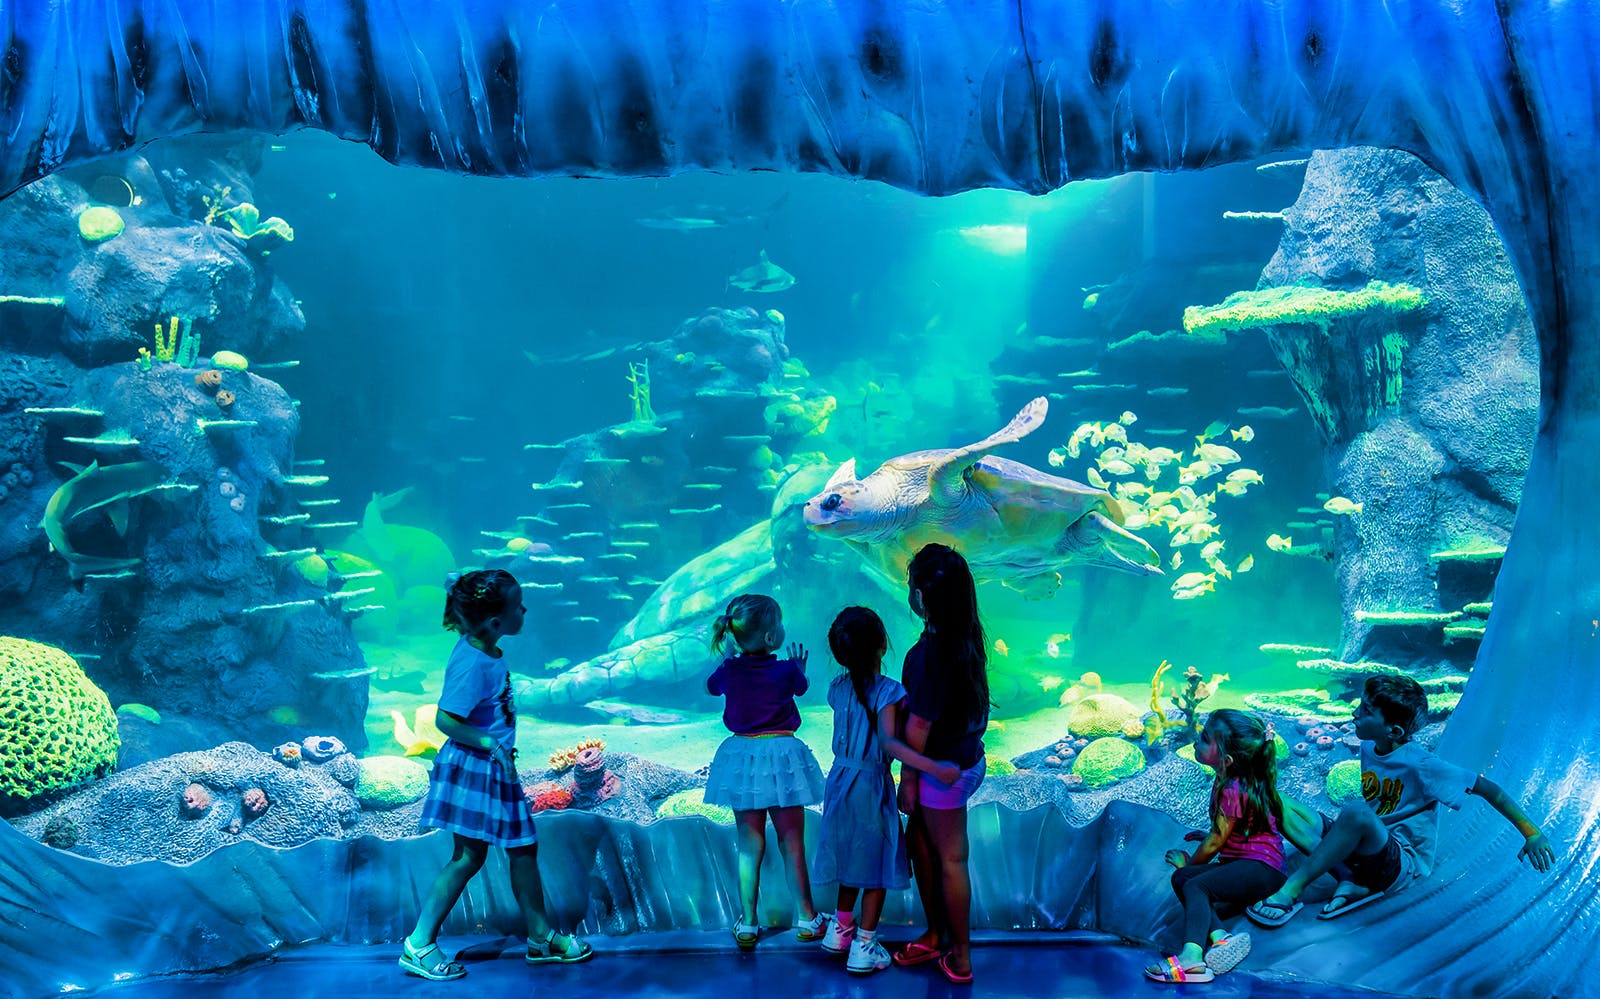 sea life sydney aquarium anytime entry ticket -3